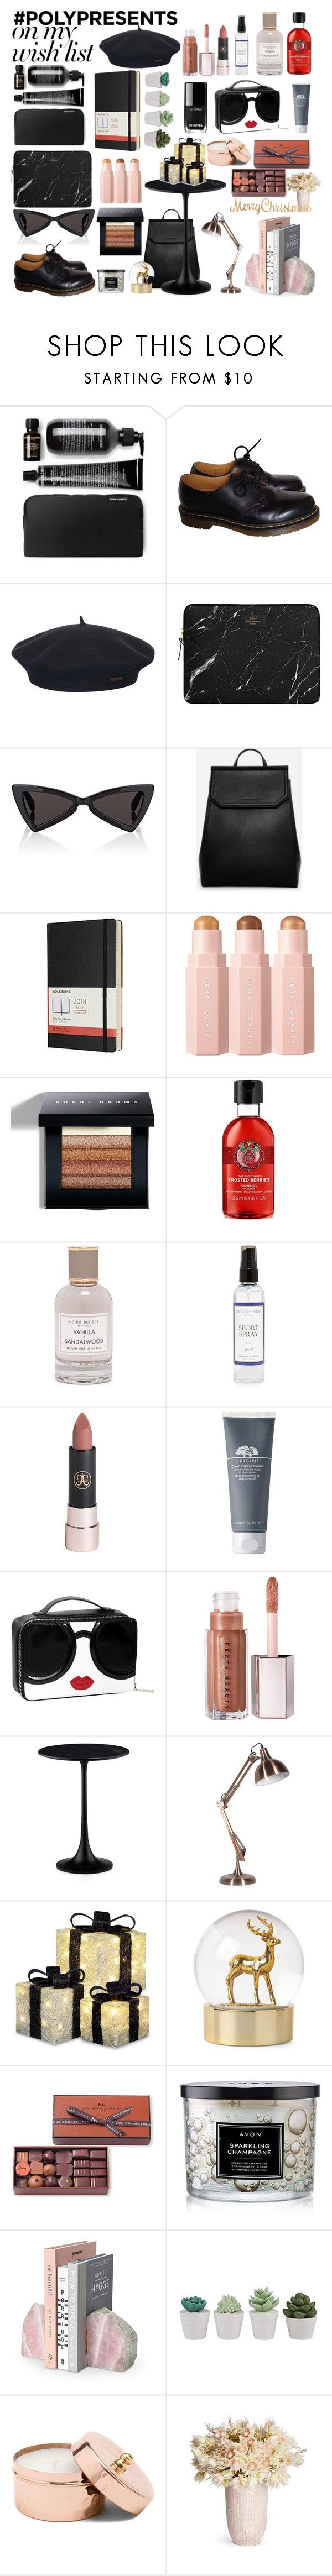 """""""#PolyPresents: Wish List"""" by deadbeat-horn on Polyvore featuring Dr. Martens, Element, Yves Saint Laurent, CHARLES & KEITH, Moleskine, Bobbi Brown Cosmetics, Henri Bendel, The Laundress, Anastasia Beverly Hills and La Maison Du Chocolat"""